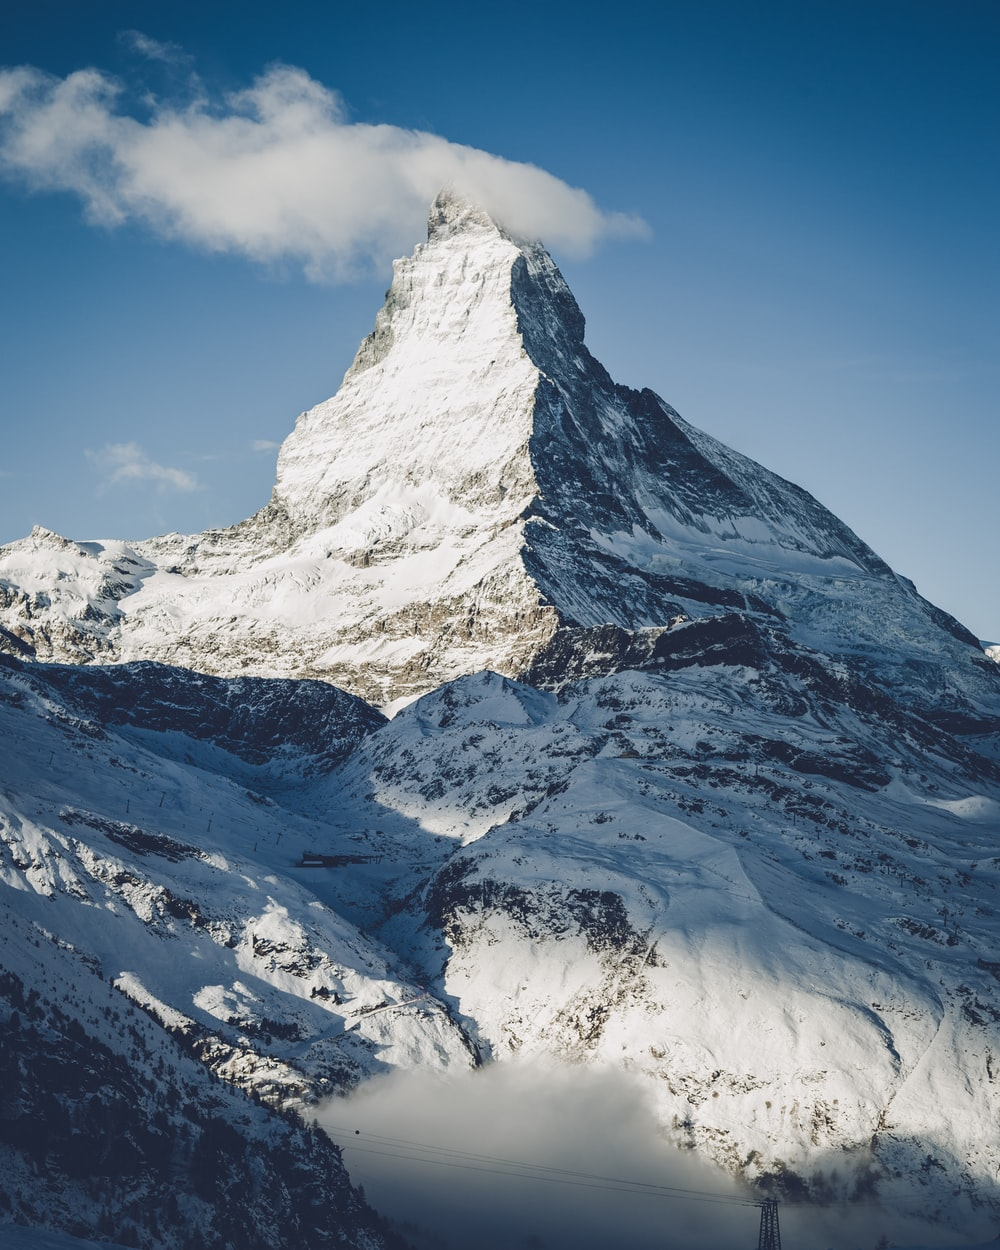 mountain covered by snow under blue sky